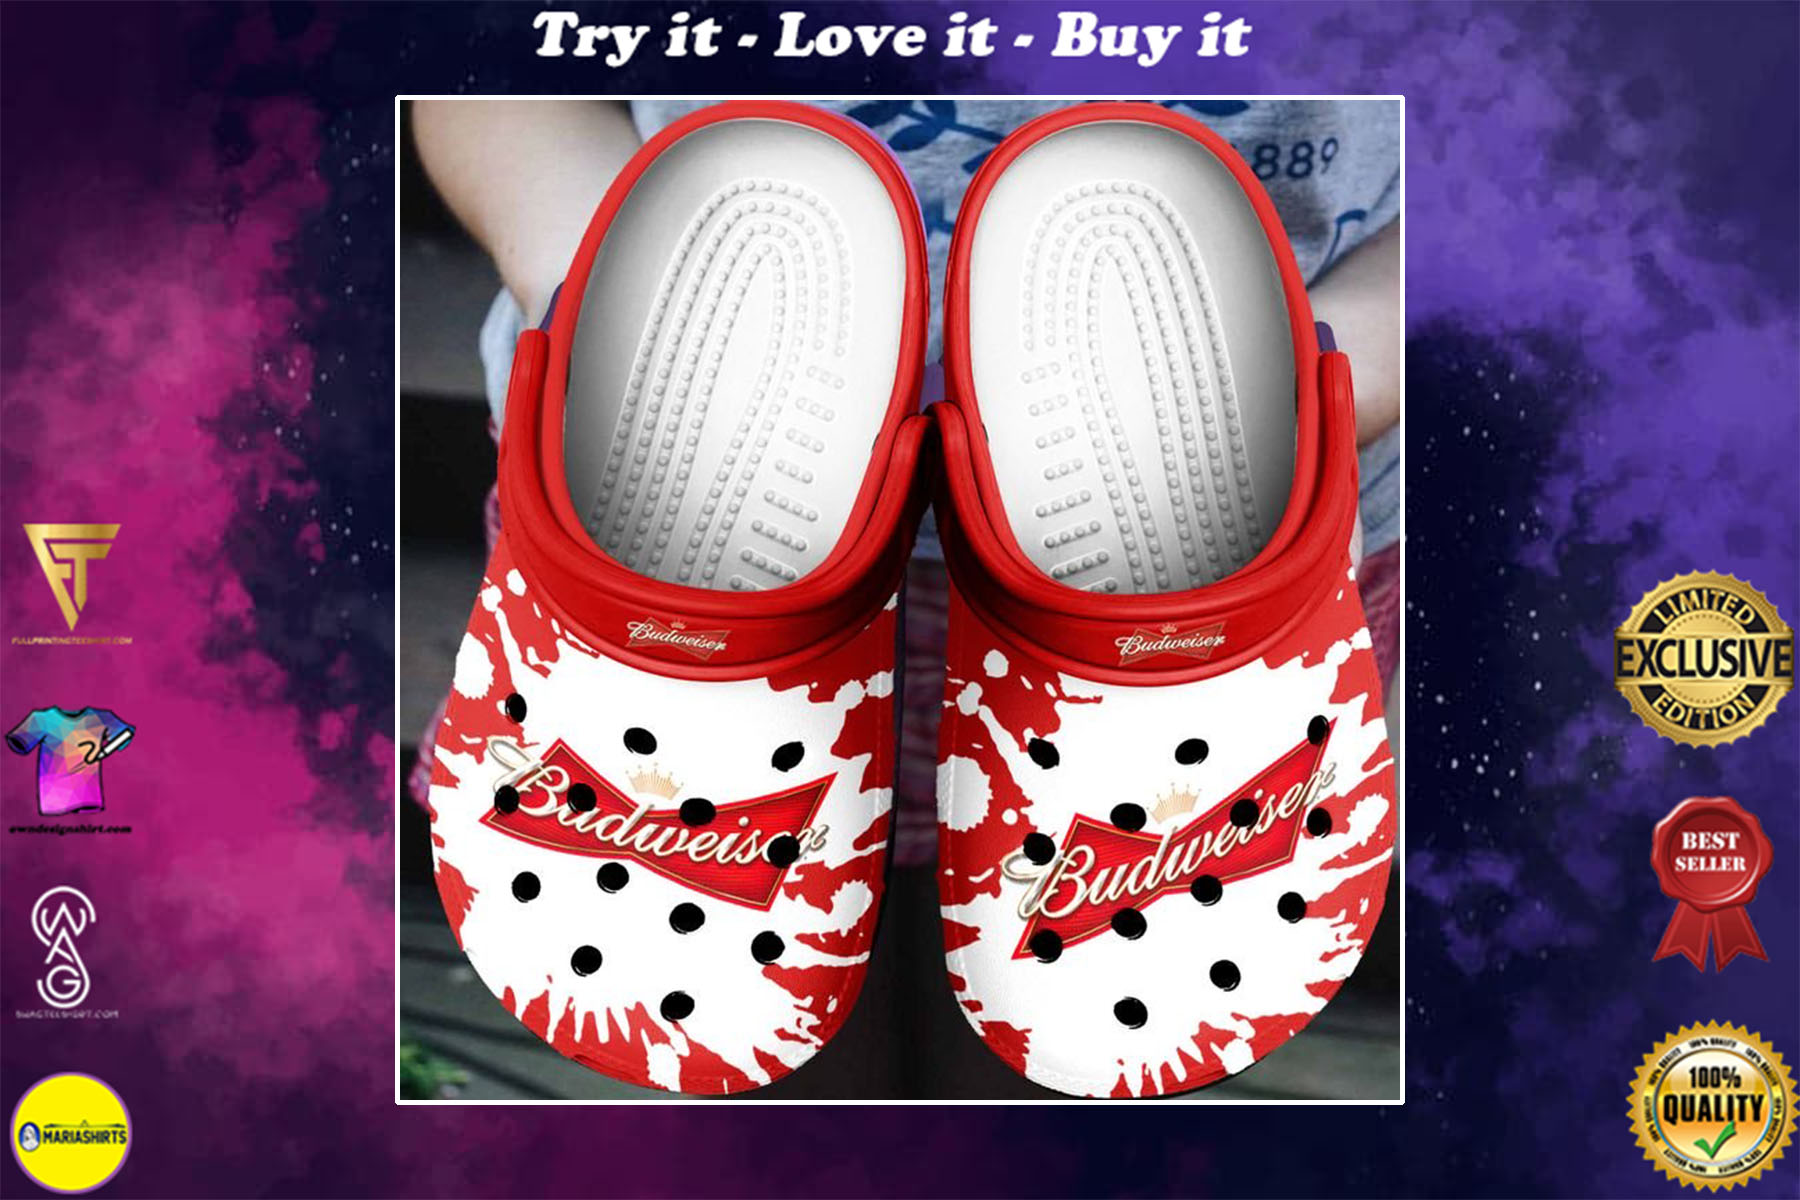 [special edition] budweiser beer crocs shoes - maria